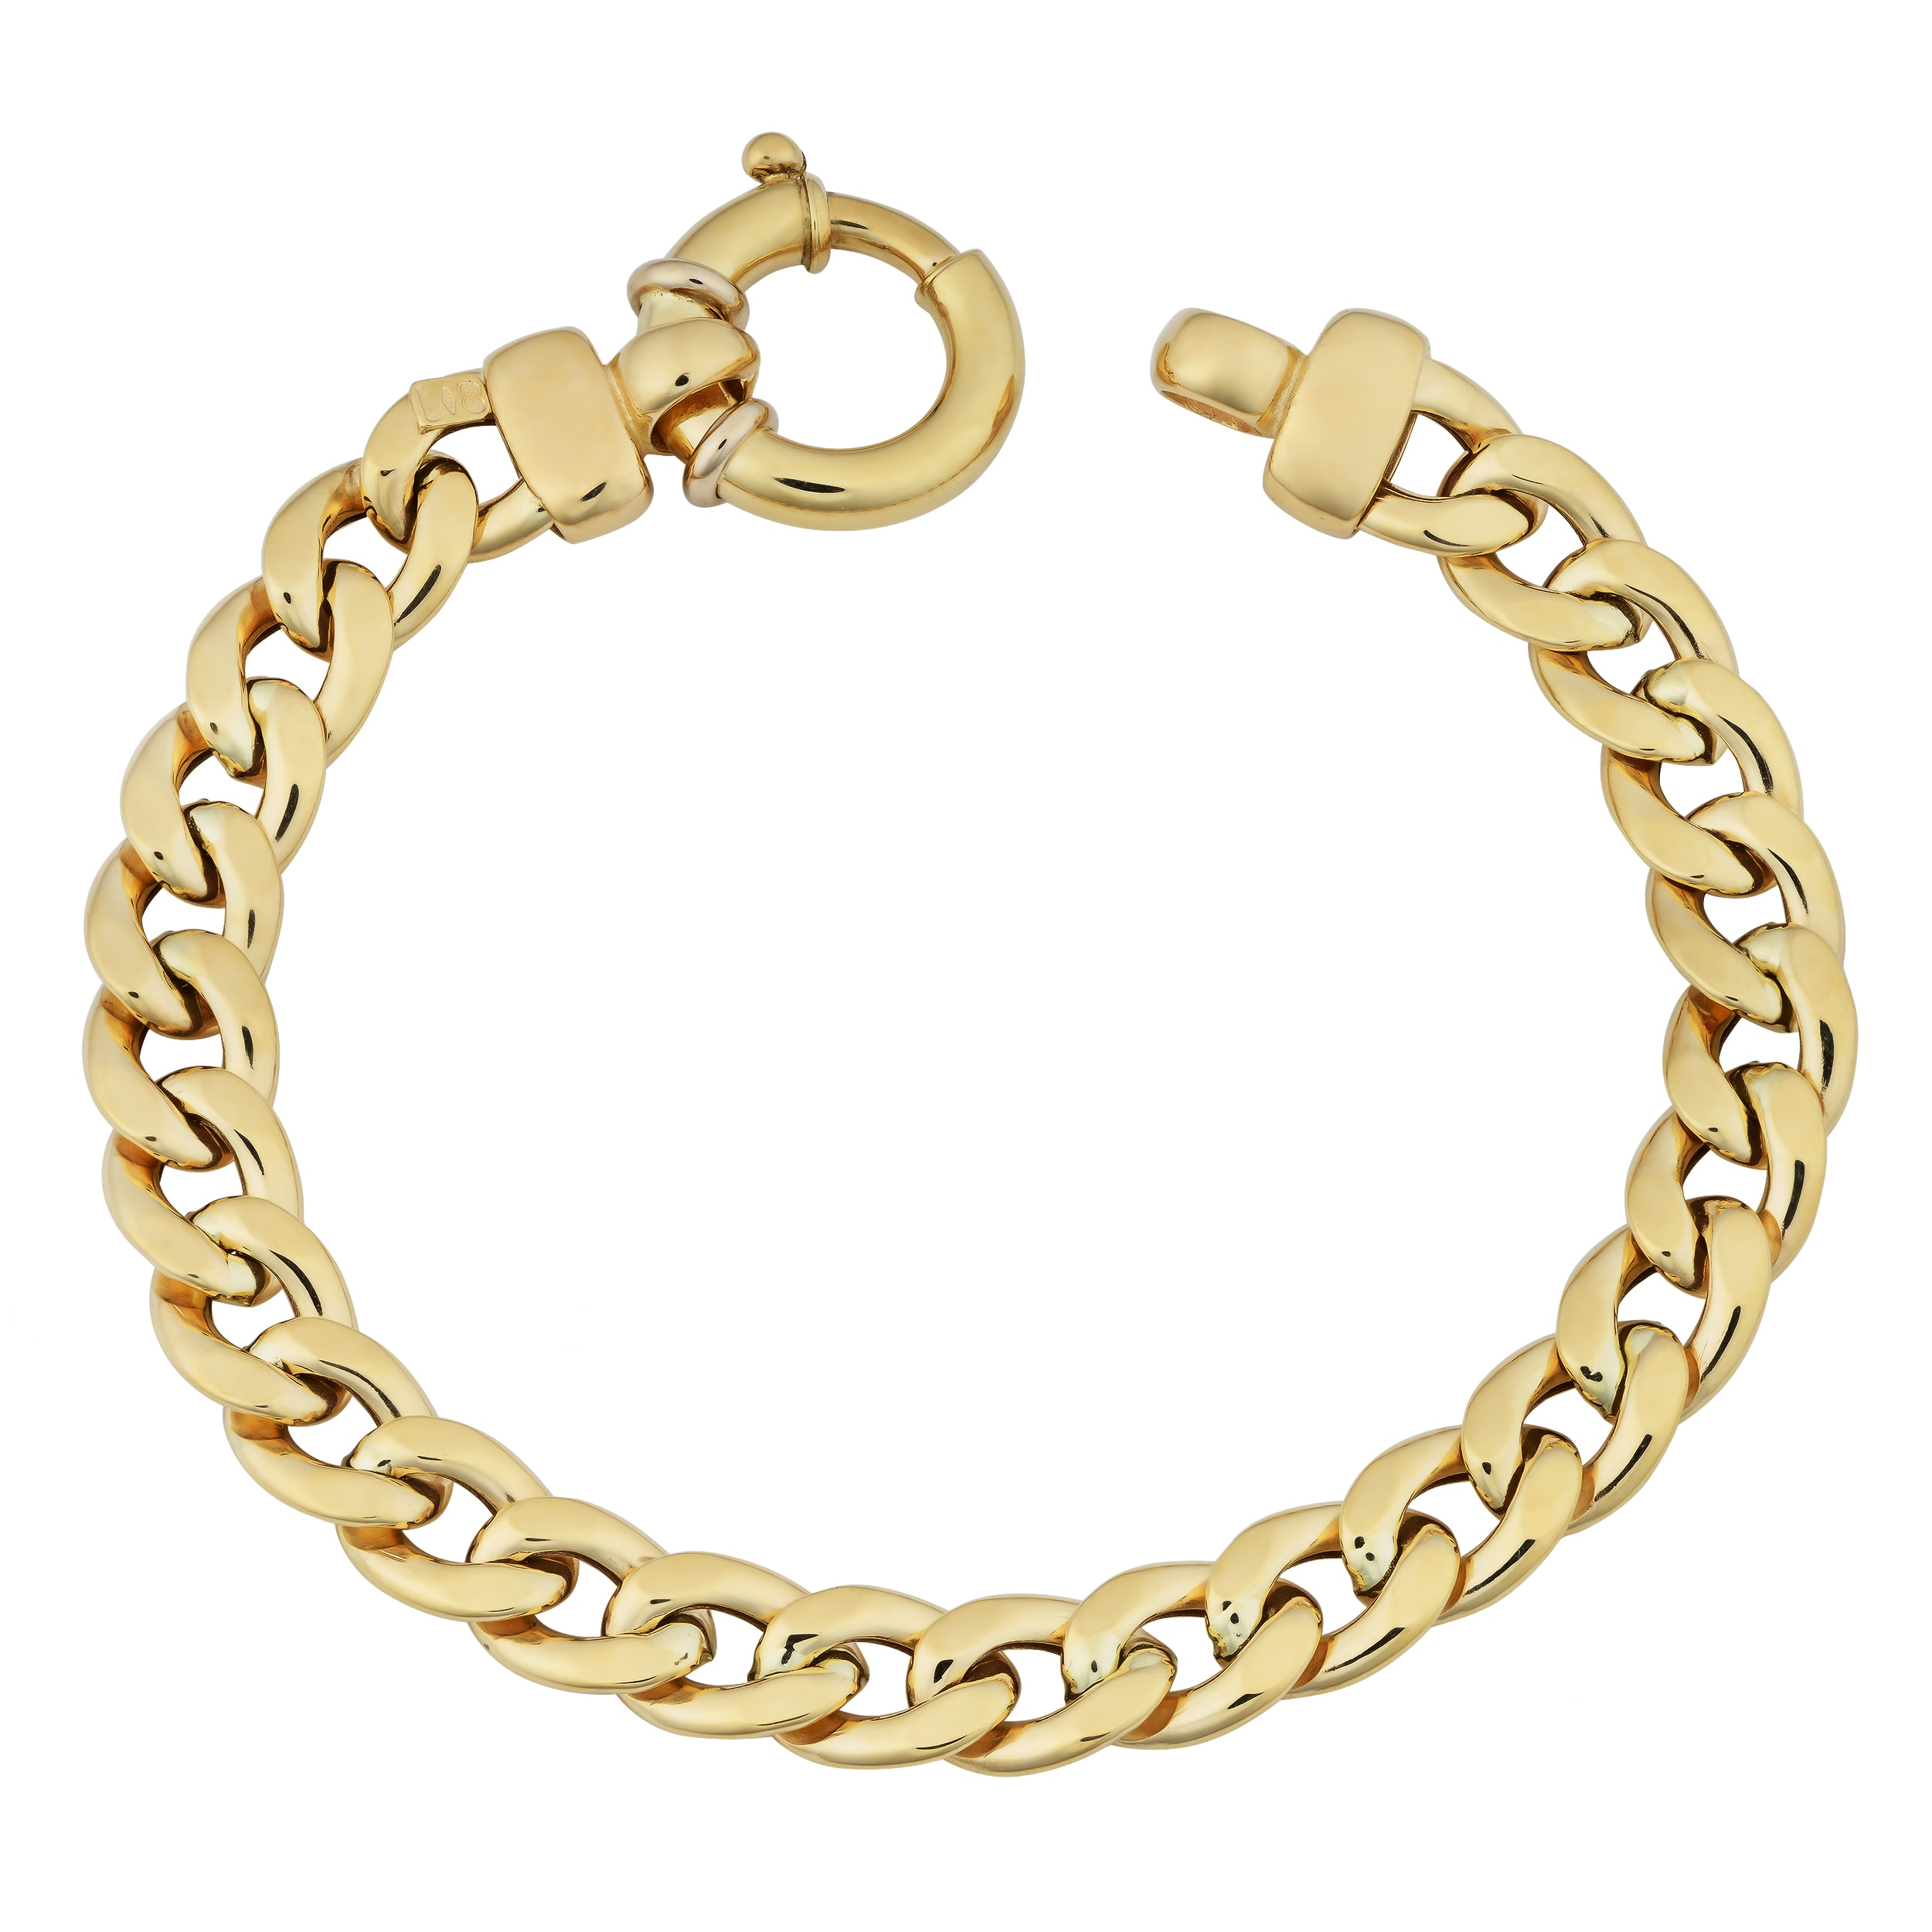 mirror gold bangles inch bracelet qvc bangle com product page imperial bar